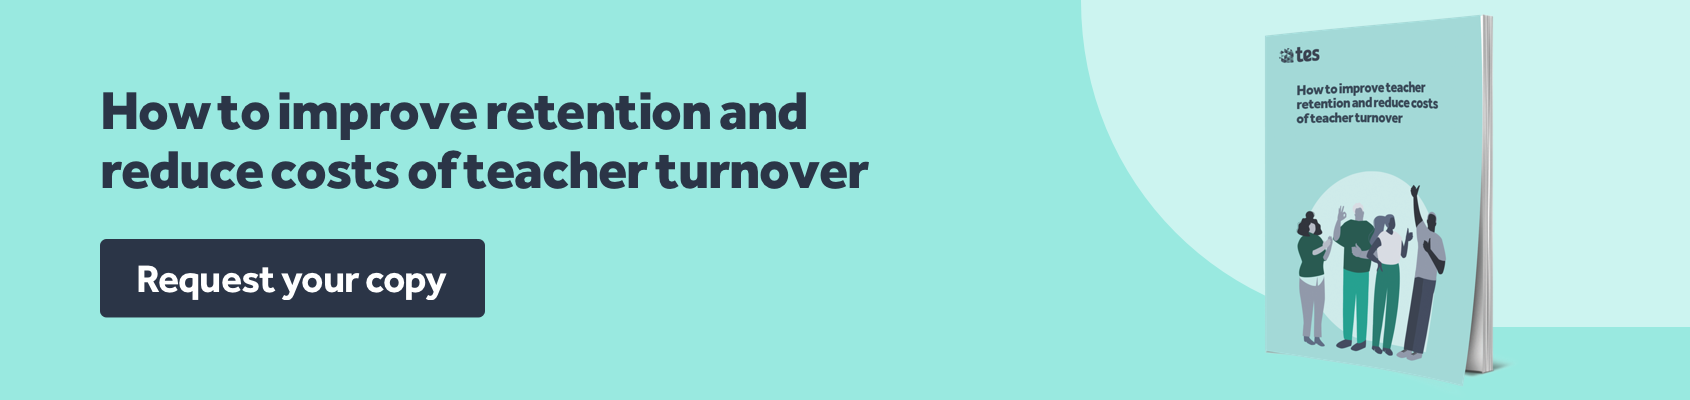 How to improve retention and reduce turnover